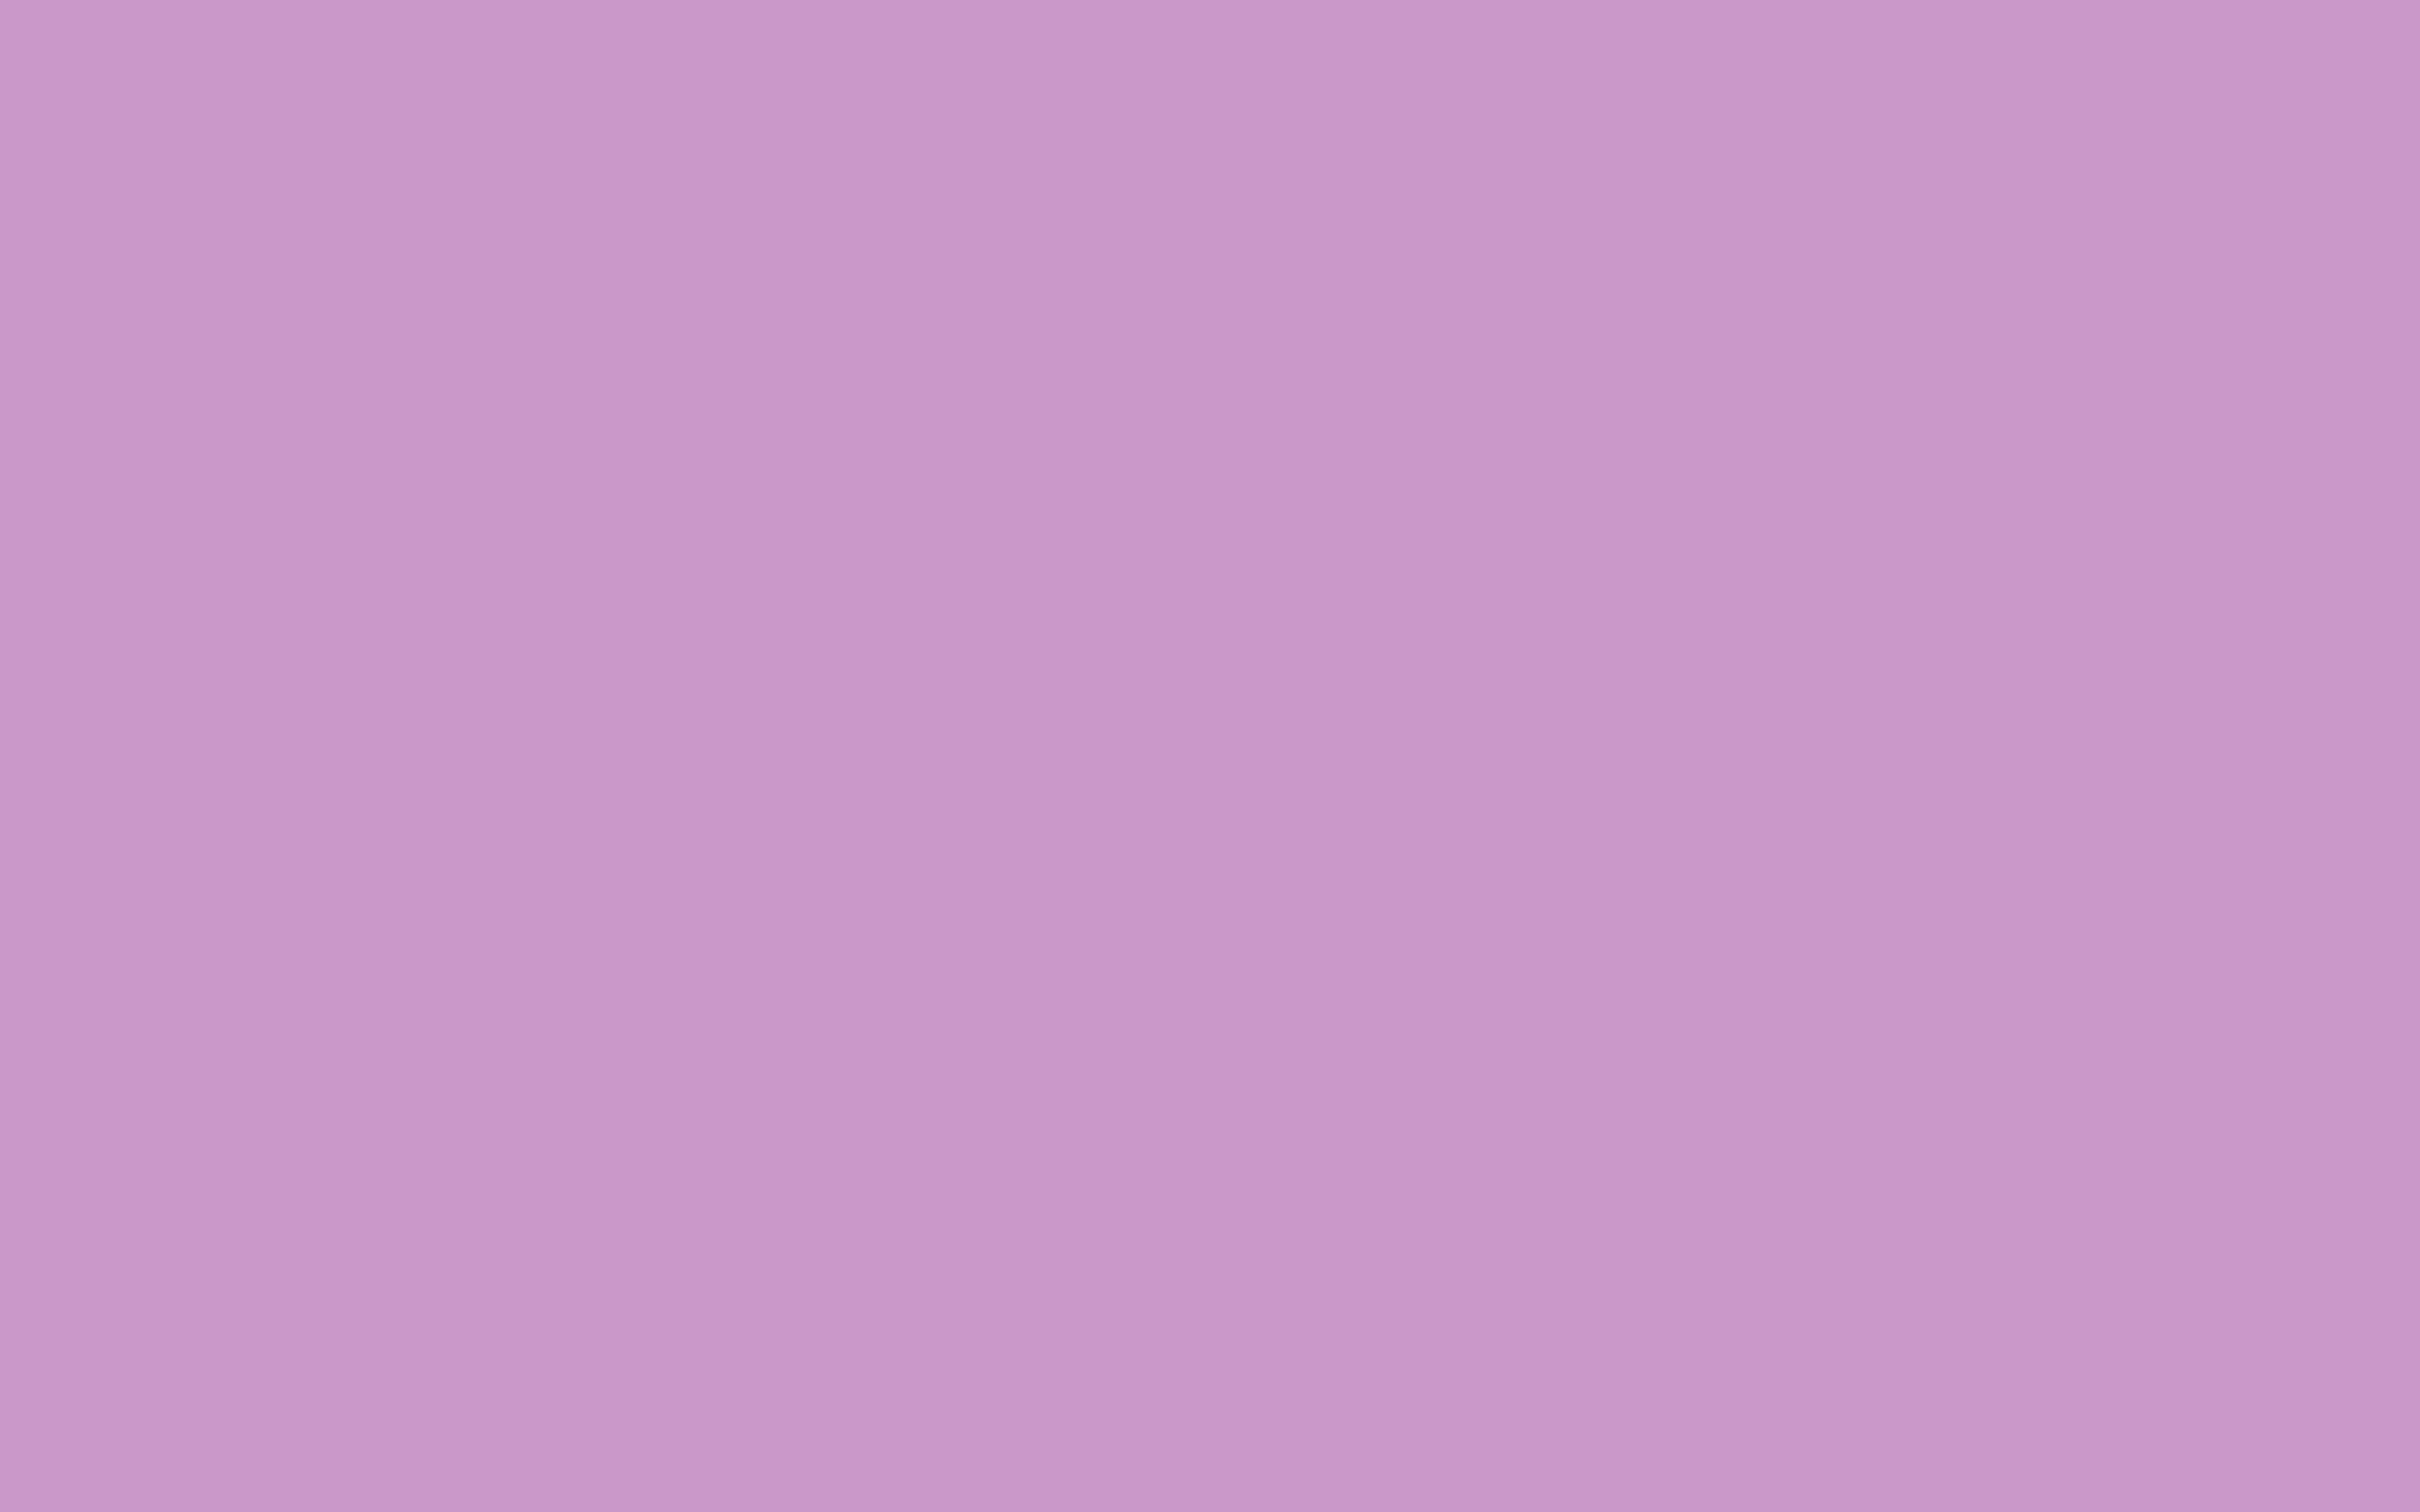 2560x1600 Pastel Violet Solid Color Background